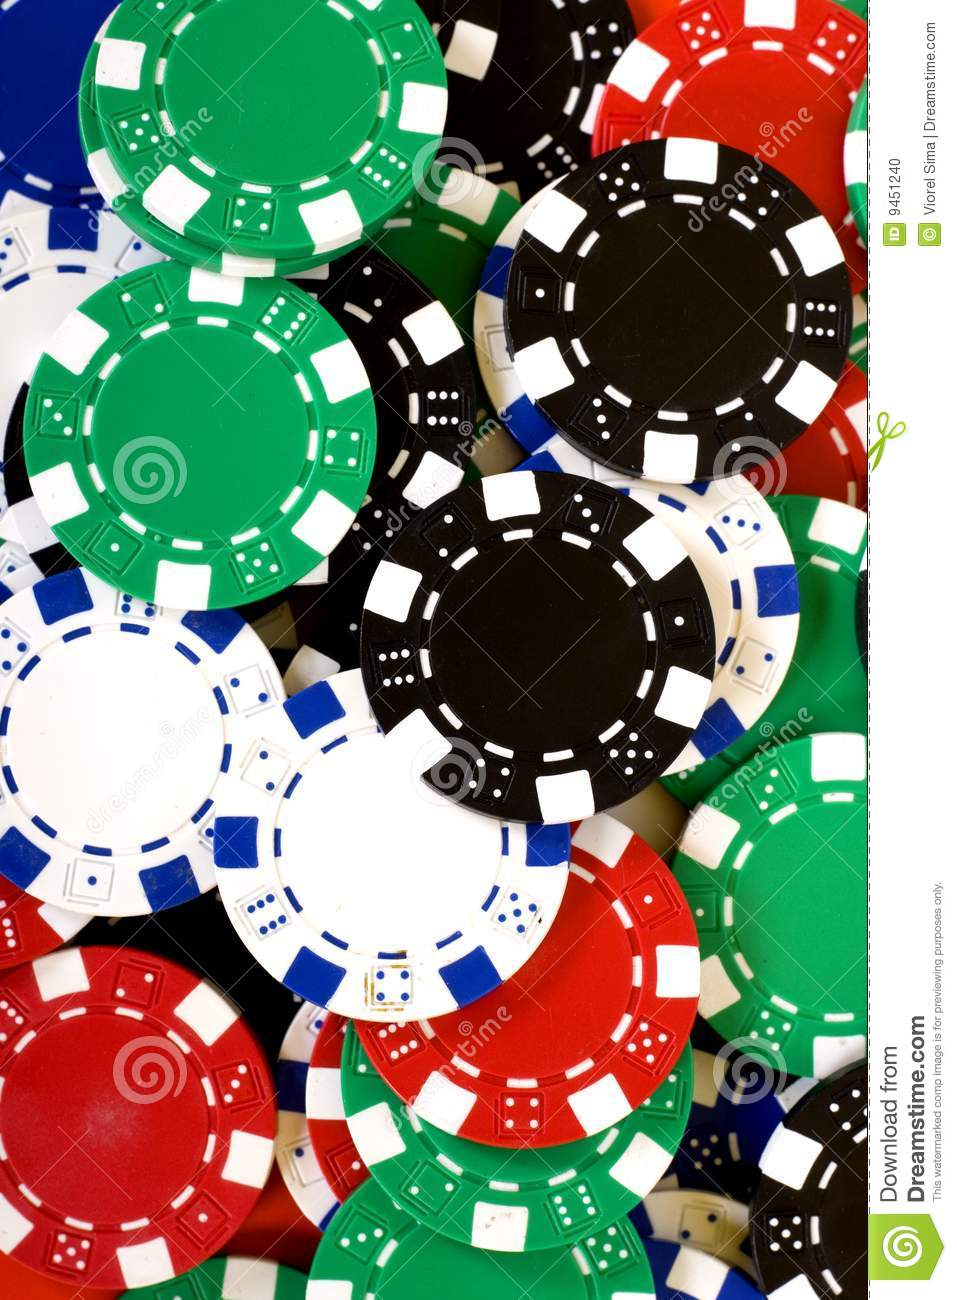 Pictures Of Casino Chips